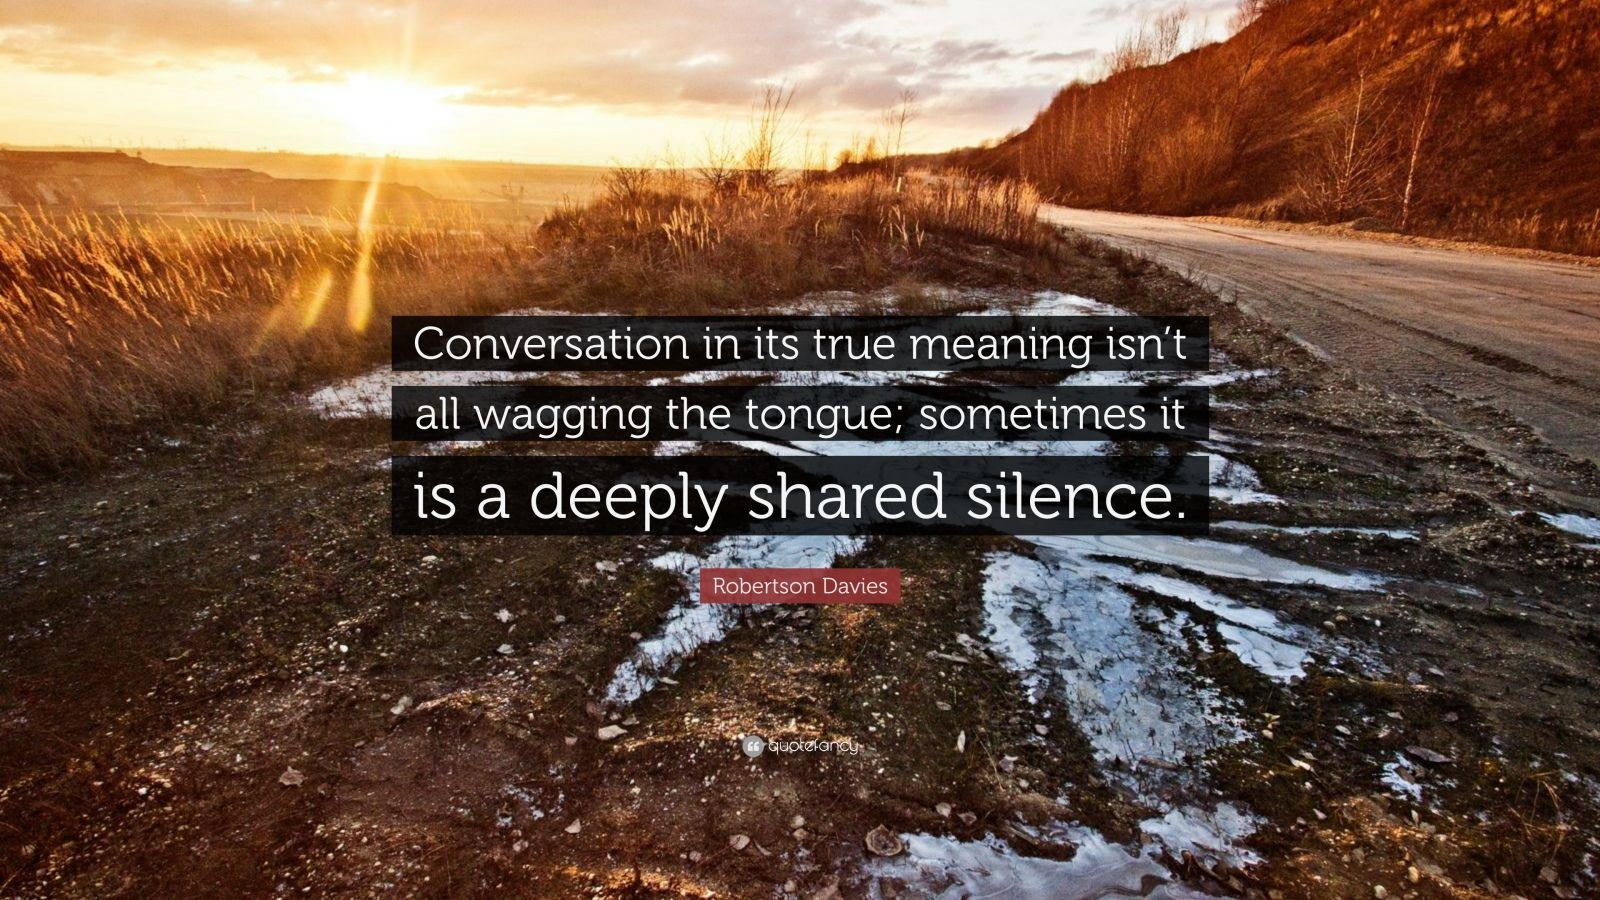 """Robertson Davies Quote: """"Conversation in its true meaning isn't all wagging the tongue; sometimes it is a deeply shared silence."""""""